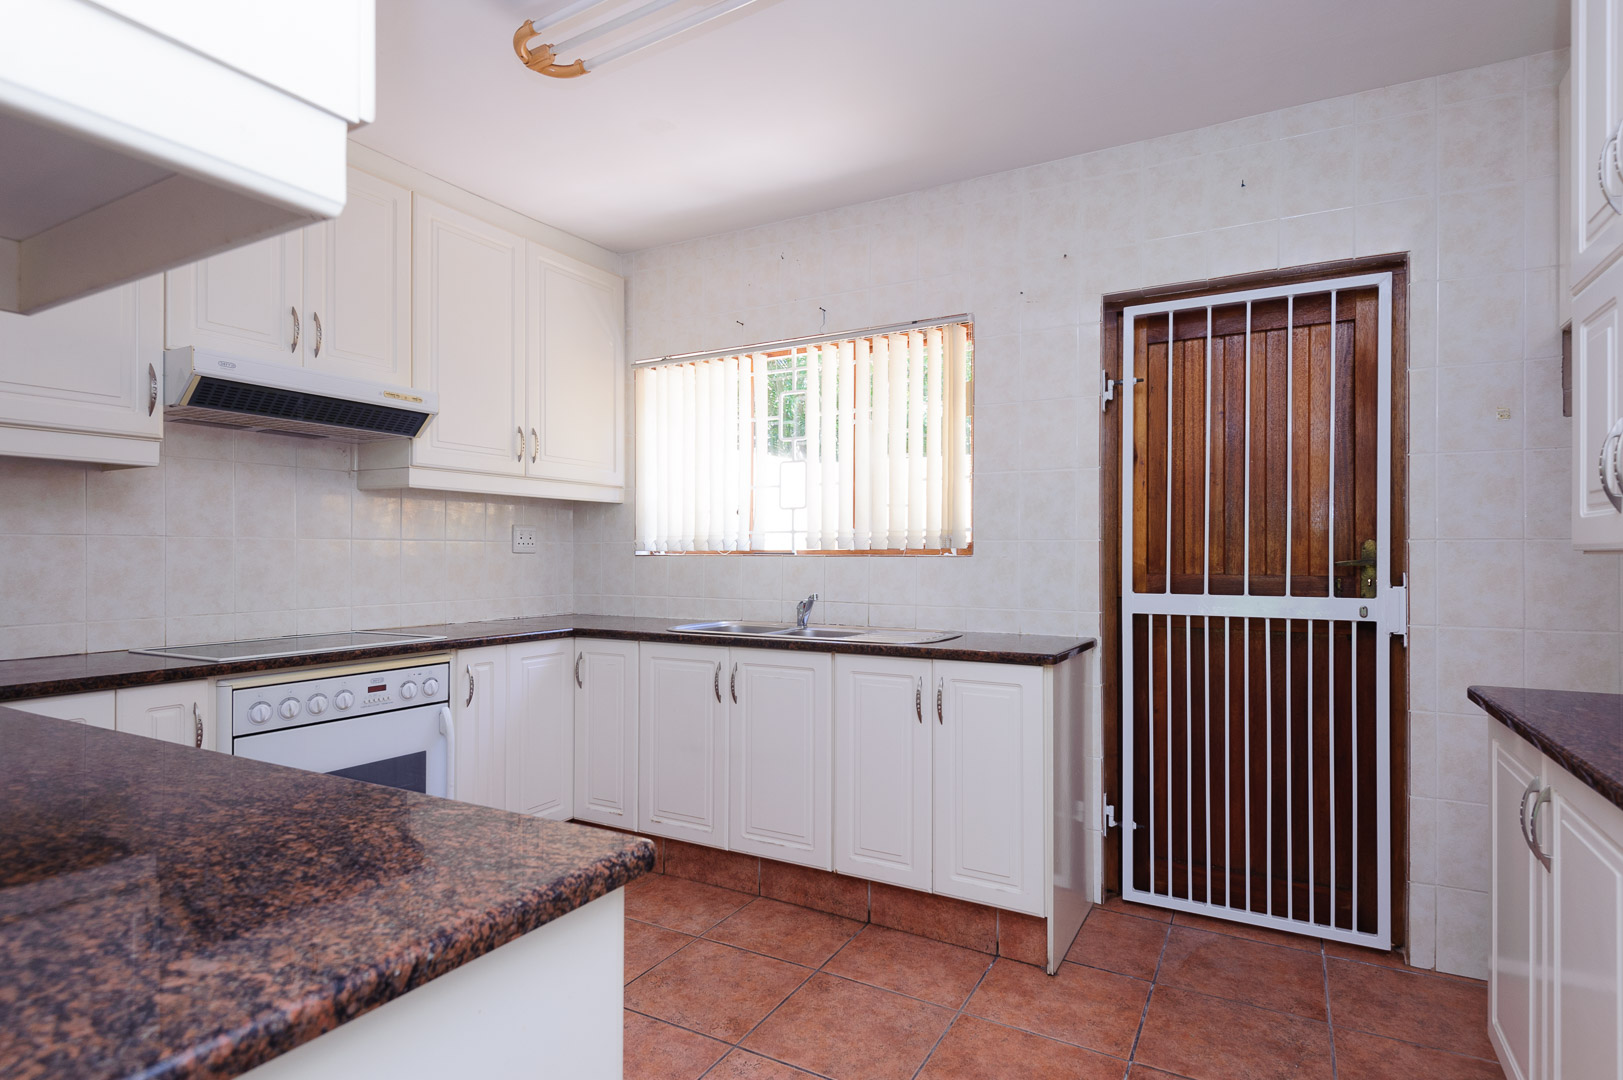 3 Bedroom Townhouse for sale in Ballito ENT0080433 : photo#8